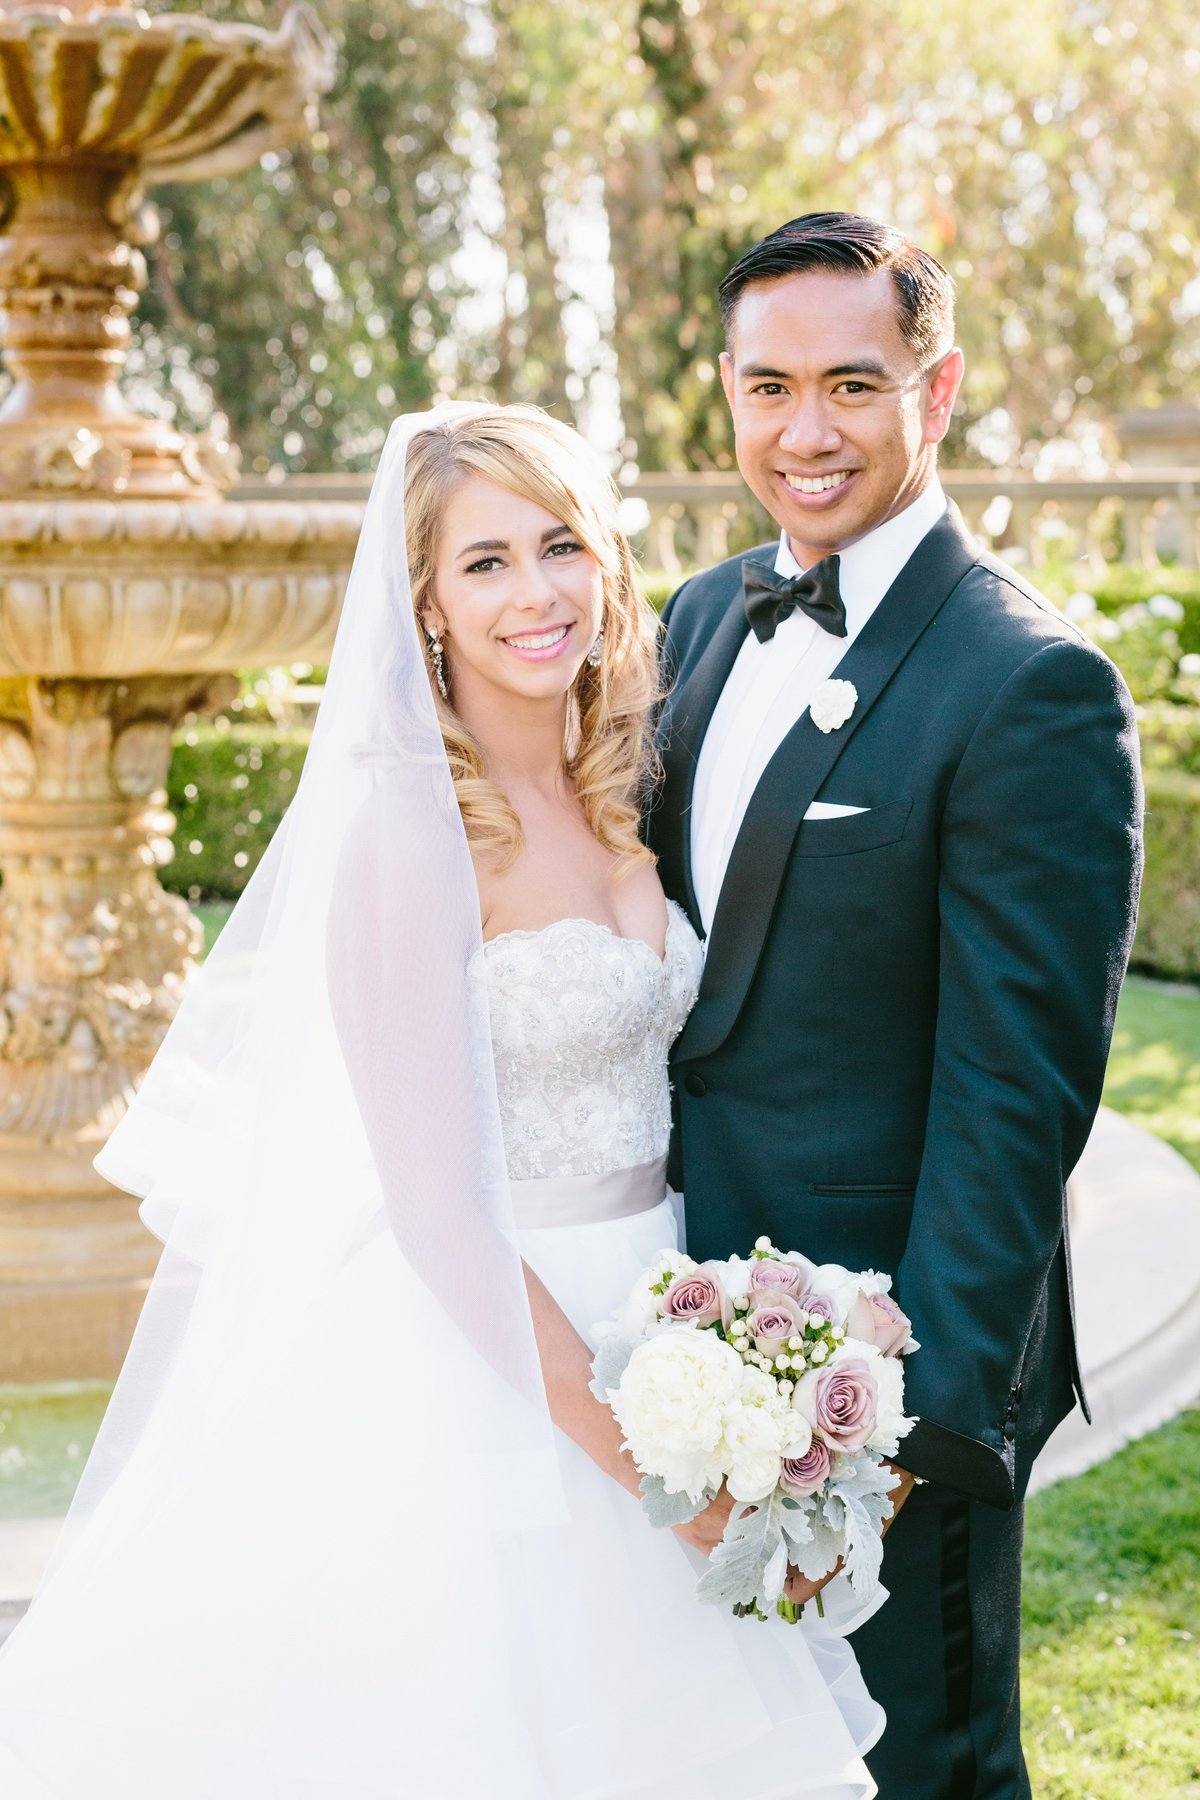 Best California Wedding Photographer-Jodee Debes Photography-294